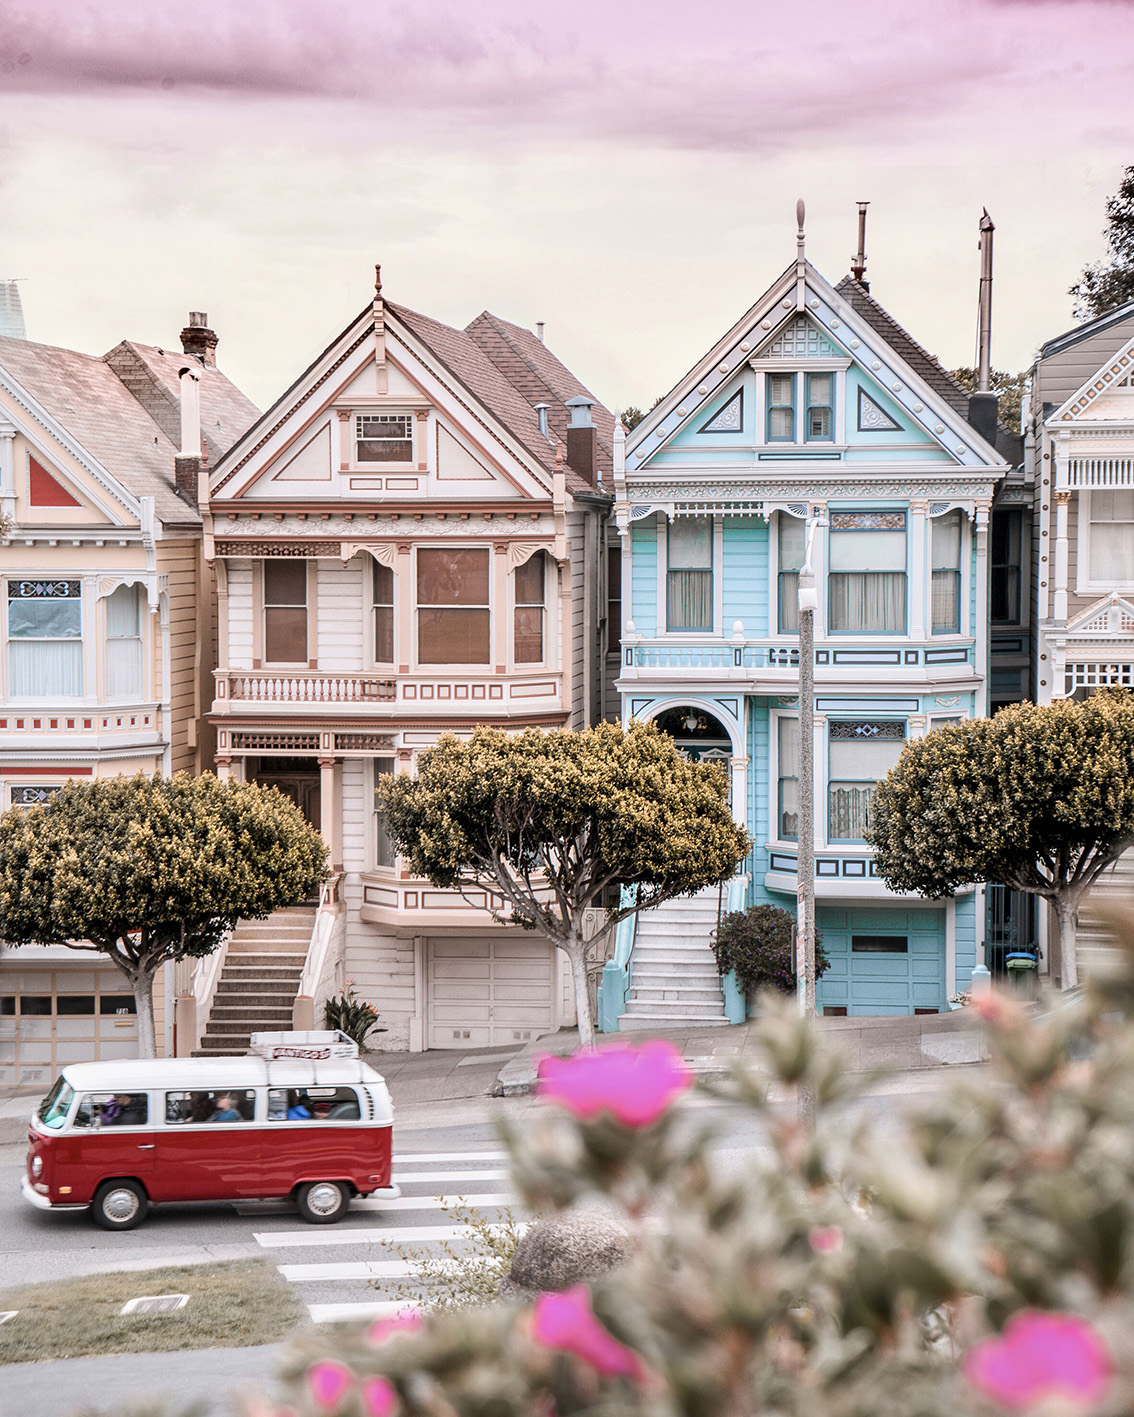 6 10 most instagrammable places in San Francisco you don't have to miss!